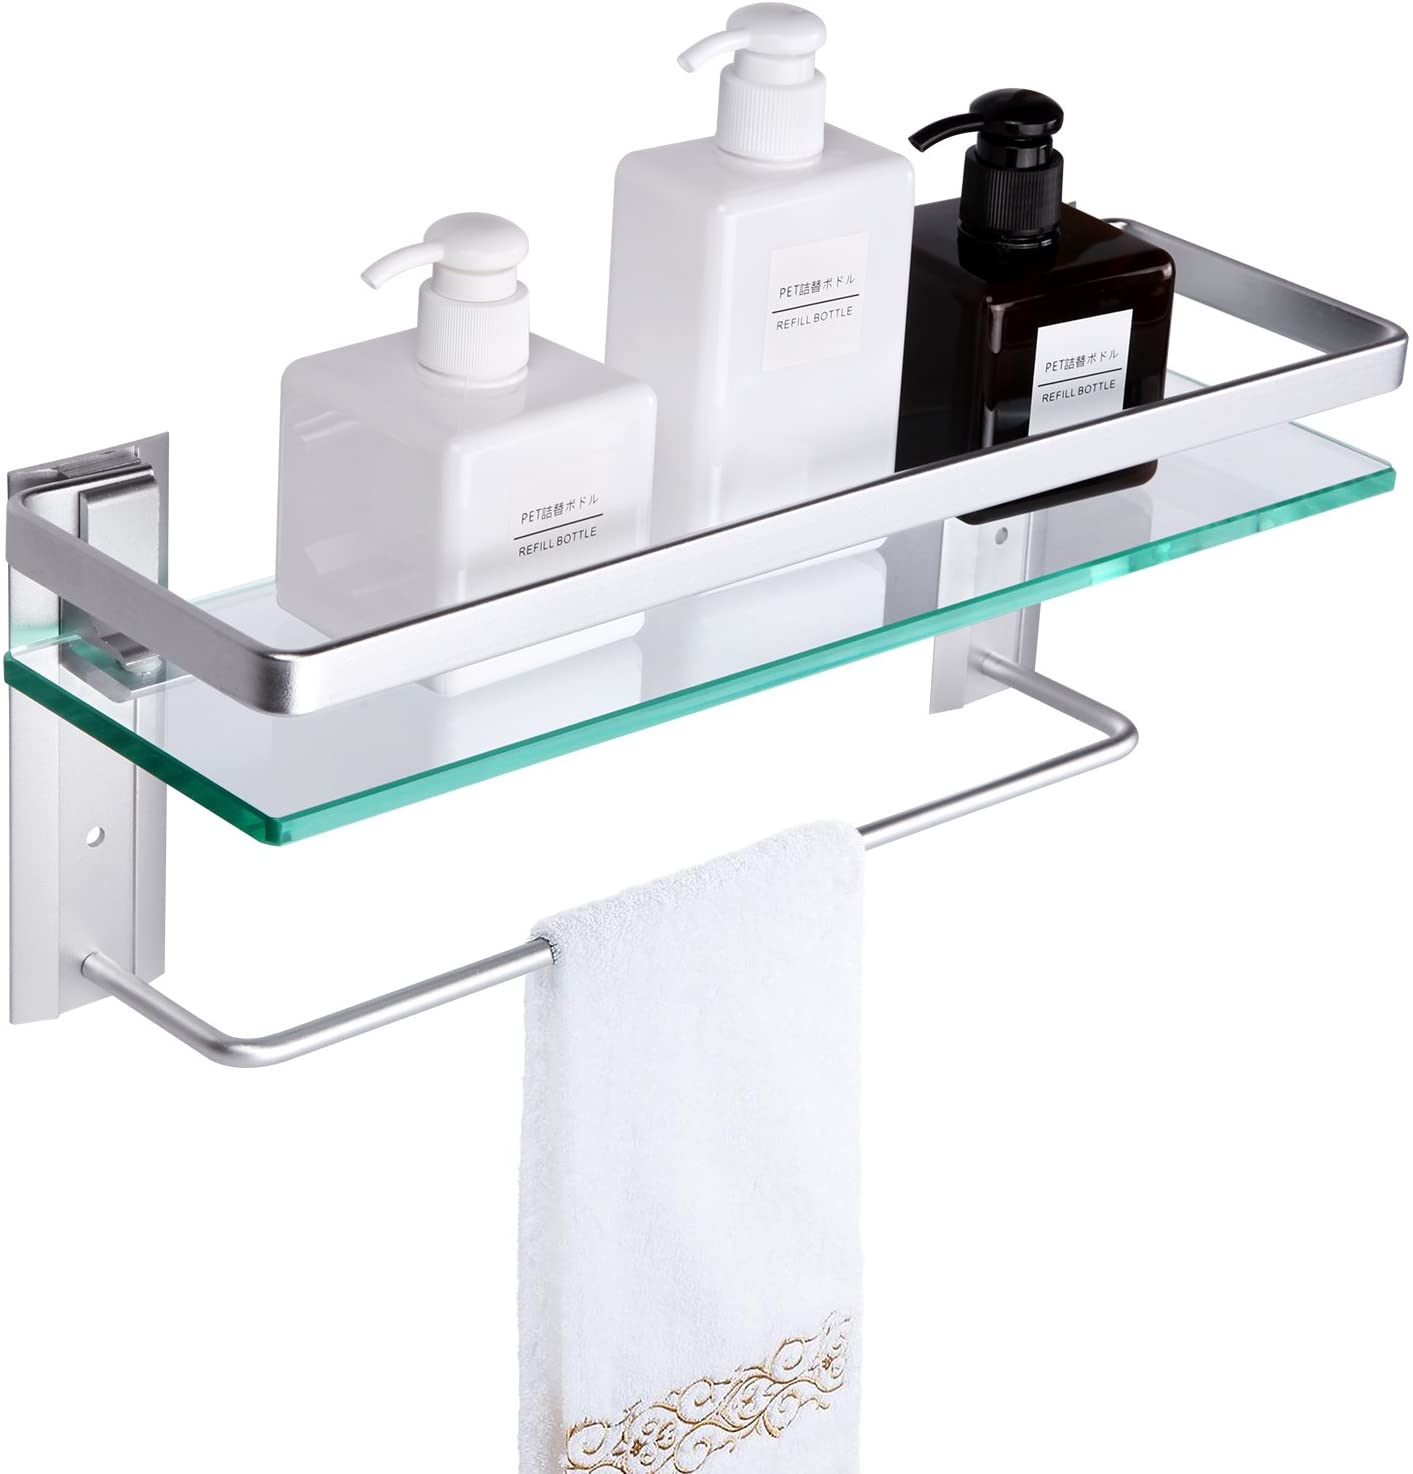 Vdomus Tempered Glass Bathroom Shelf with Towel Bar Wall Mounted Shower storage15.2 by 4.5 inches, Brushed Silver Finish (Silver): Kitchen & Dining